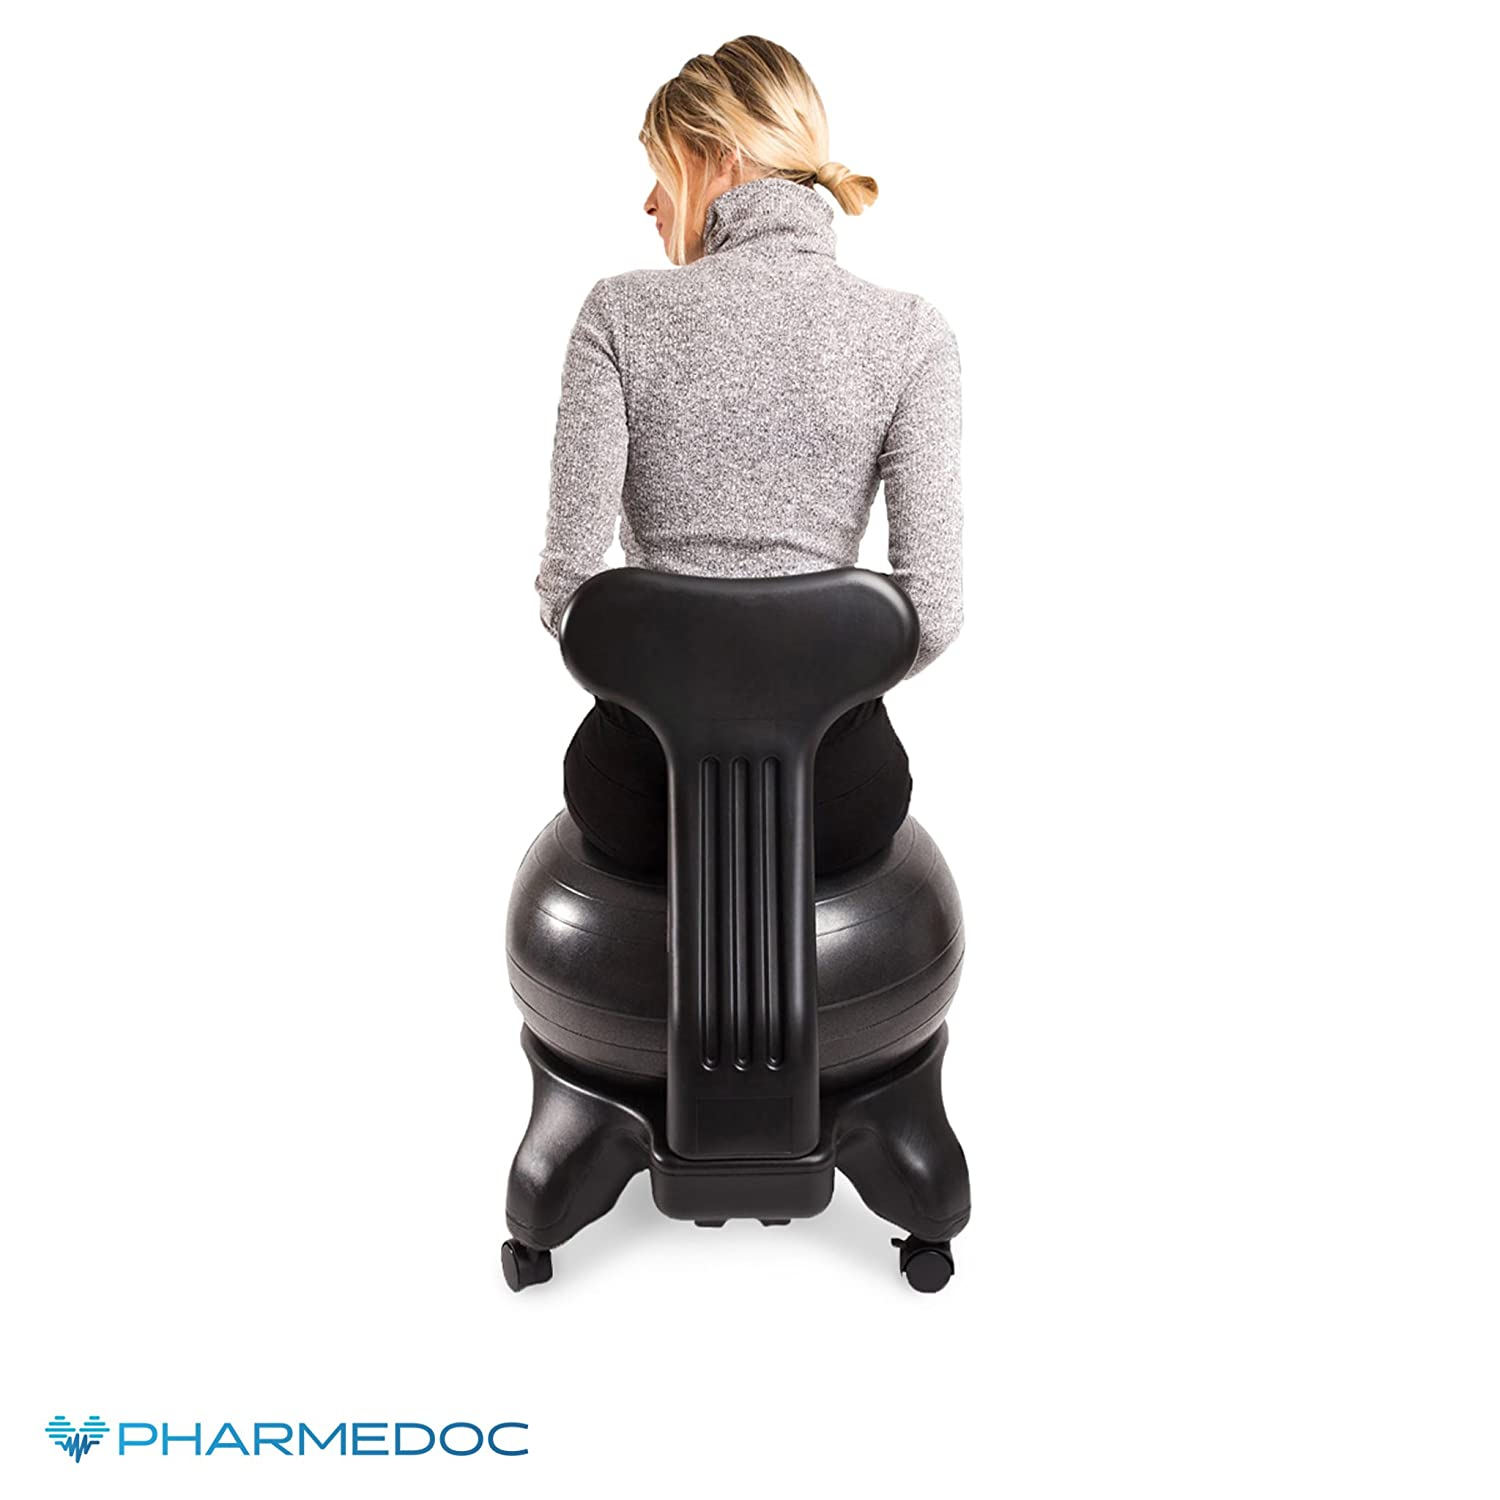 Amazon Balance Ball Chair with Back Support for Home and